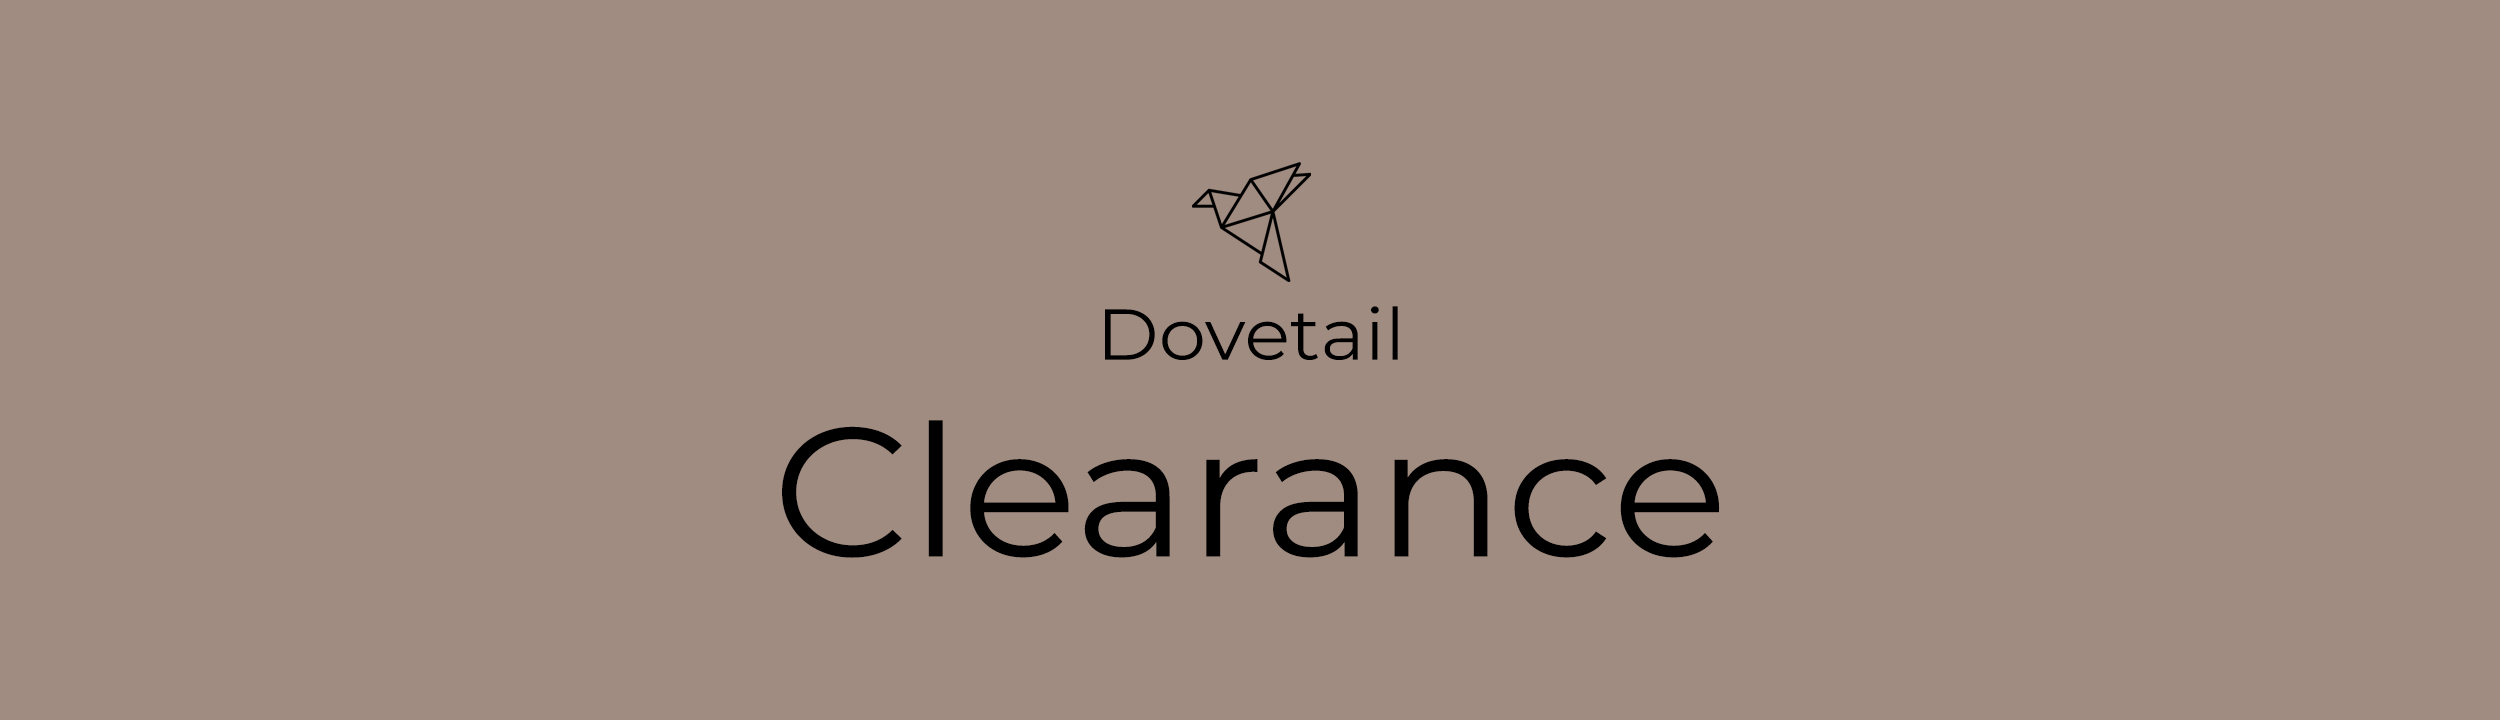 Dovetail Furniture header image for the Clearance page